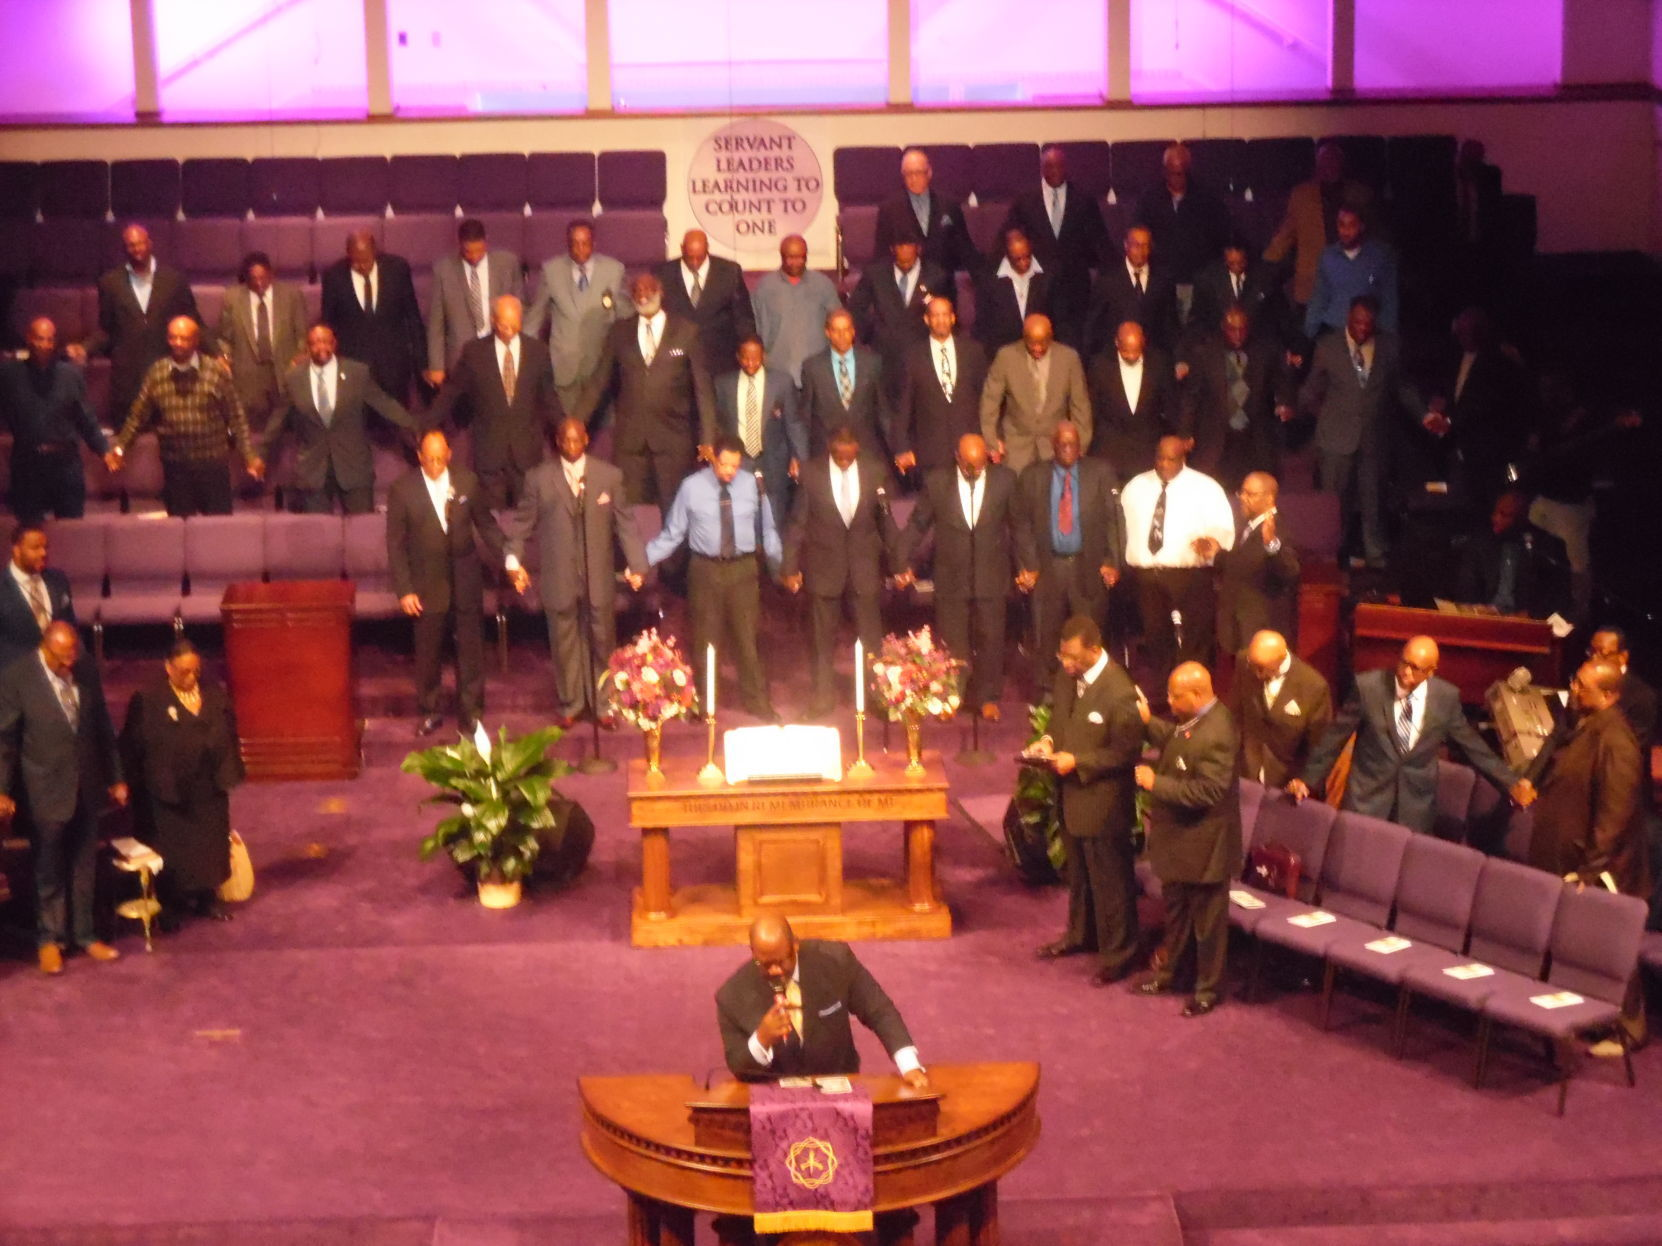 Mt airy cogic online sexual misconduct